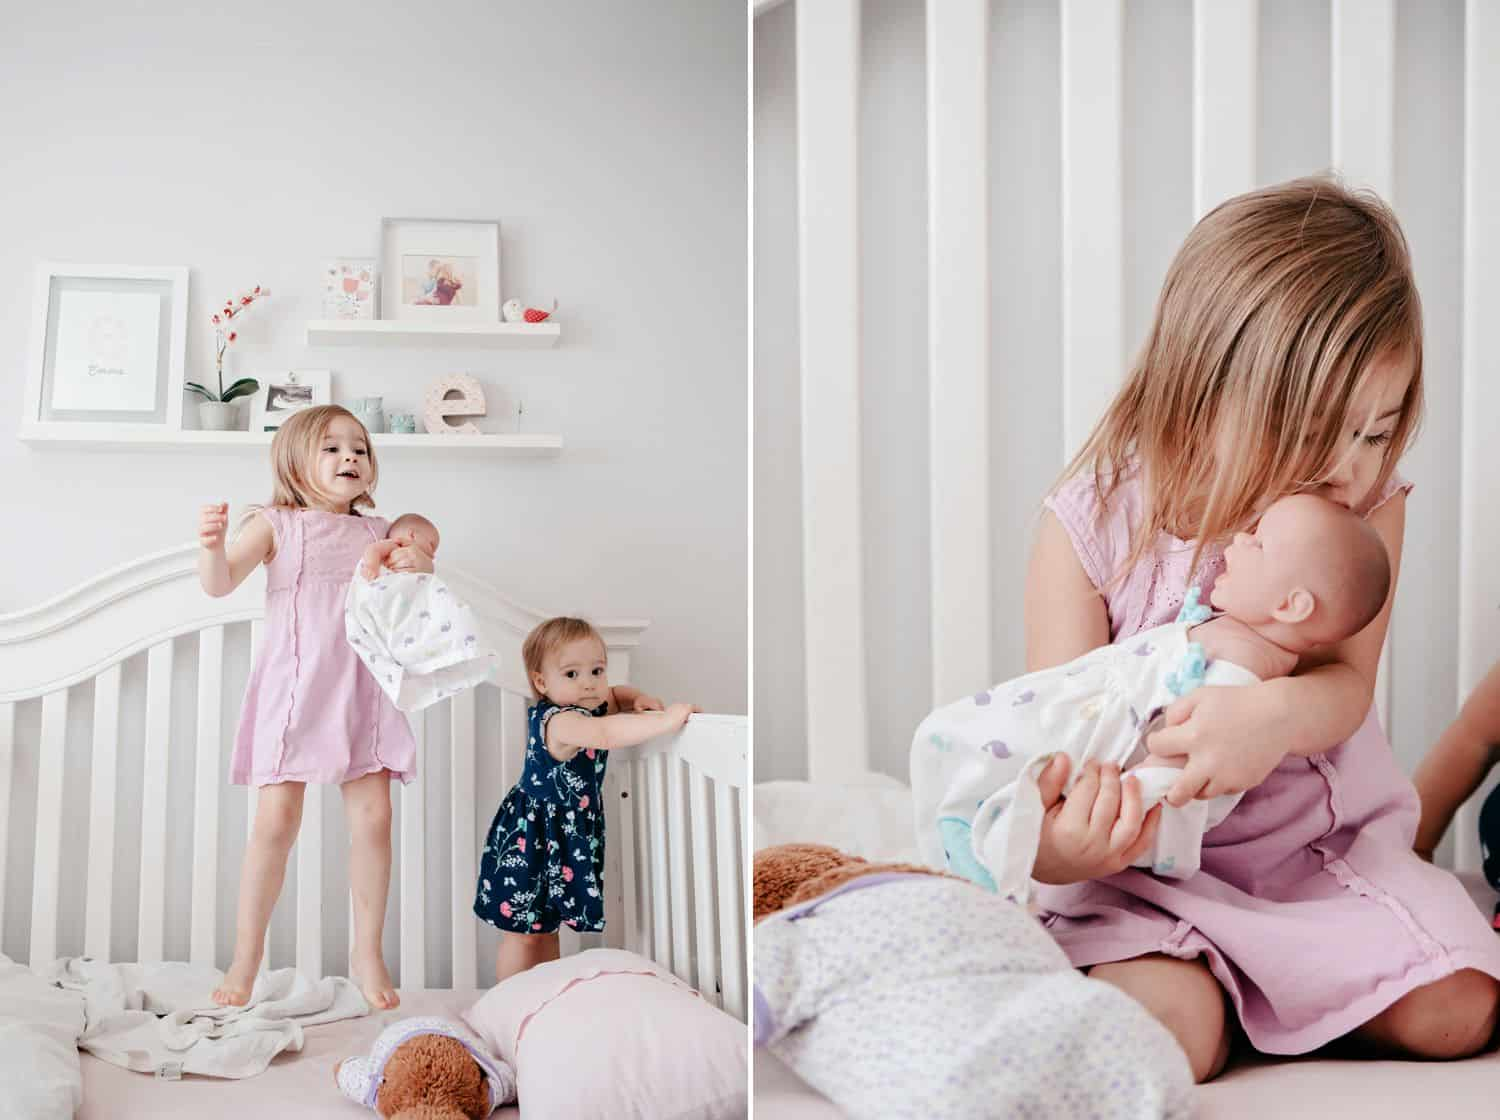 Sisters play in their baby sibling's crib with a doll.